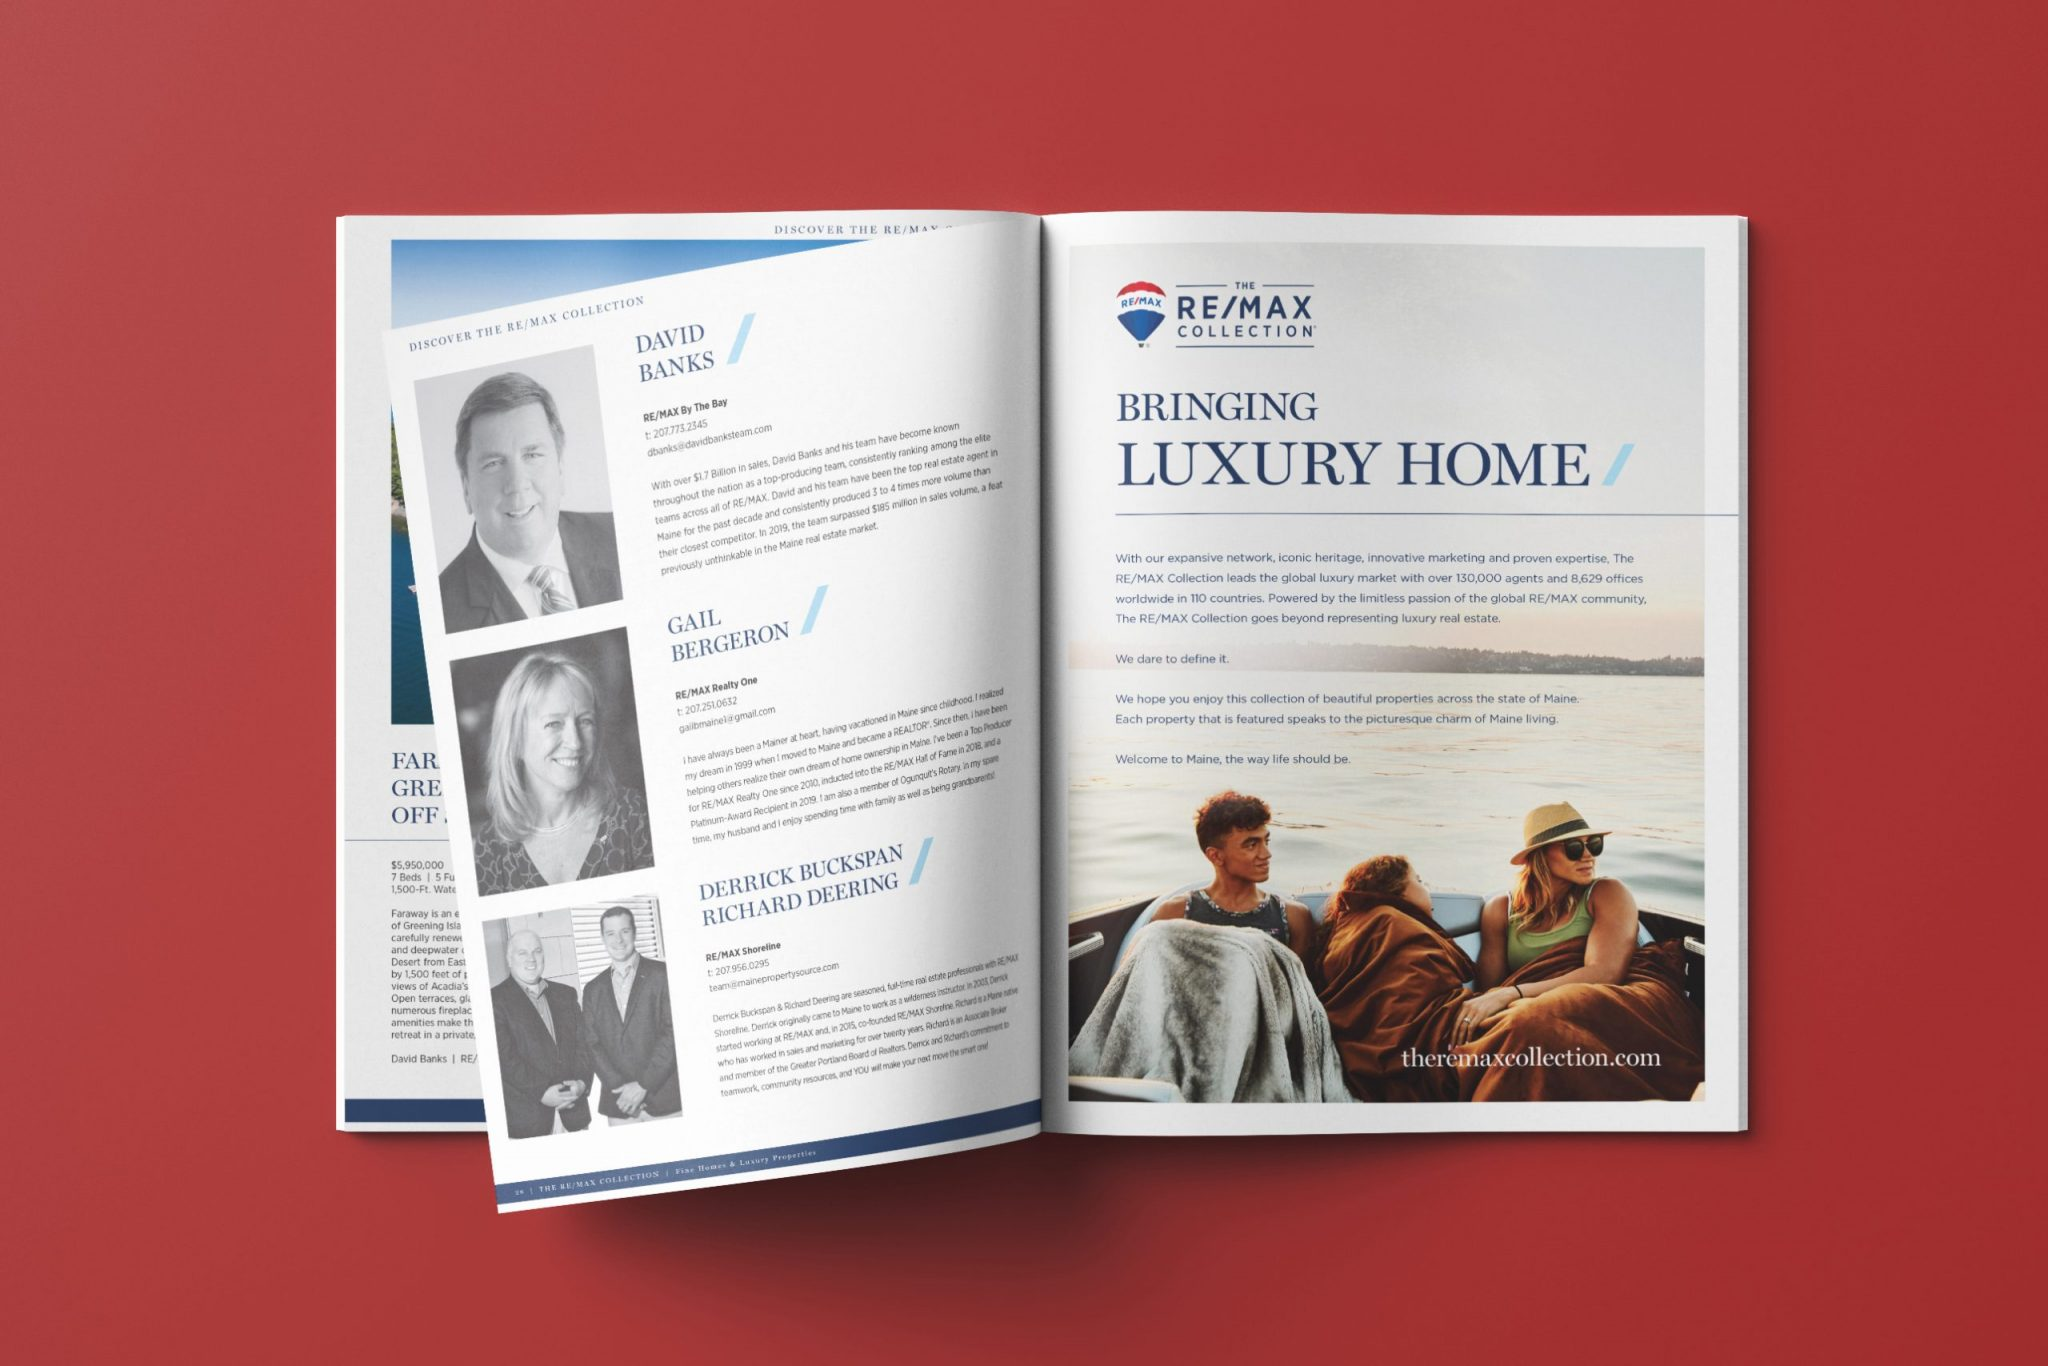 remax-collection-downeast-magazine-insert-4